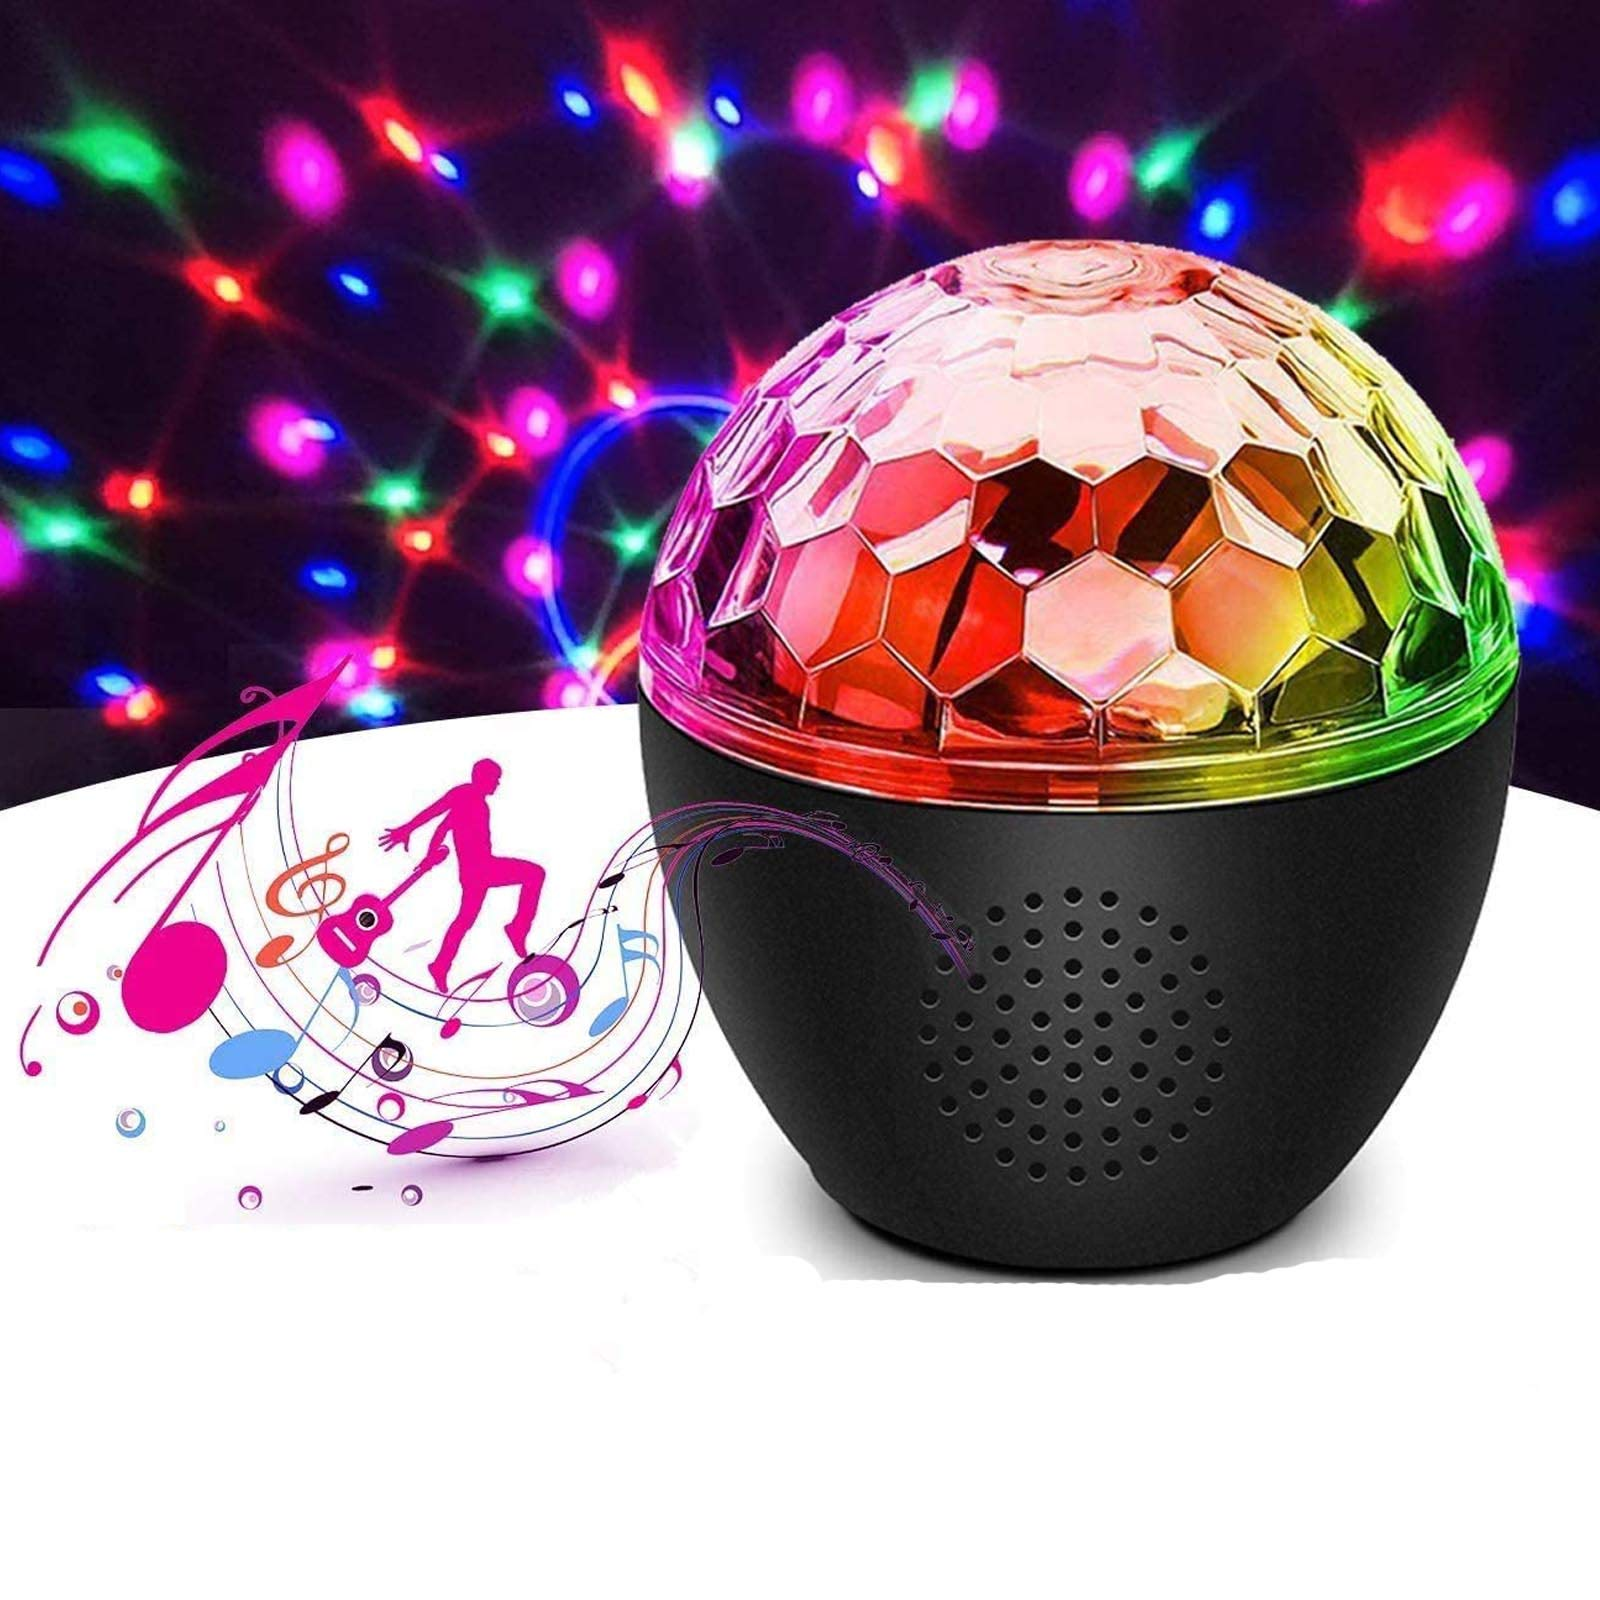 16 Colors Sound Activated Disco Ball Light,4W RGB Party Lights with Remote Control,Dance Lights Adjustable Light Brightness Rotation speed for Parties,Holidays,Birthdays,Baby Sensory(Built in Battery)